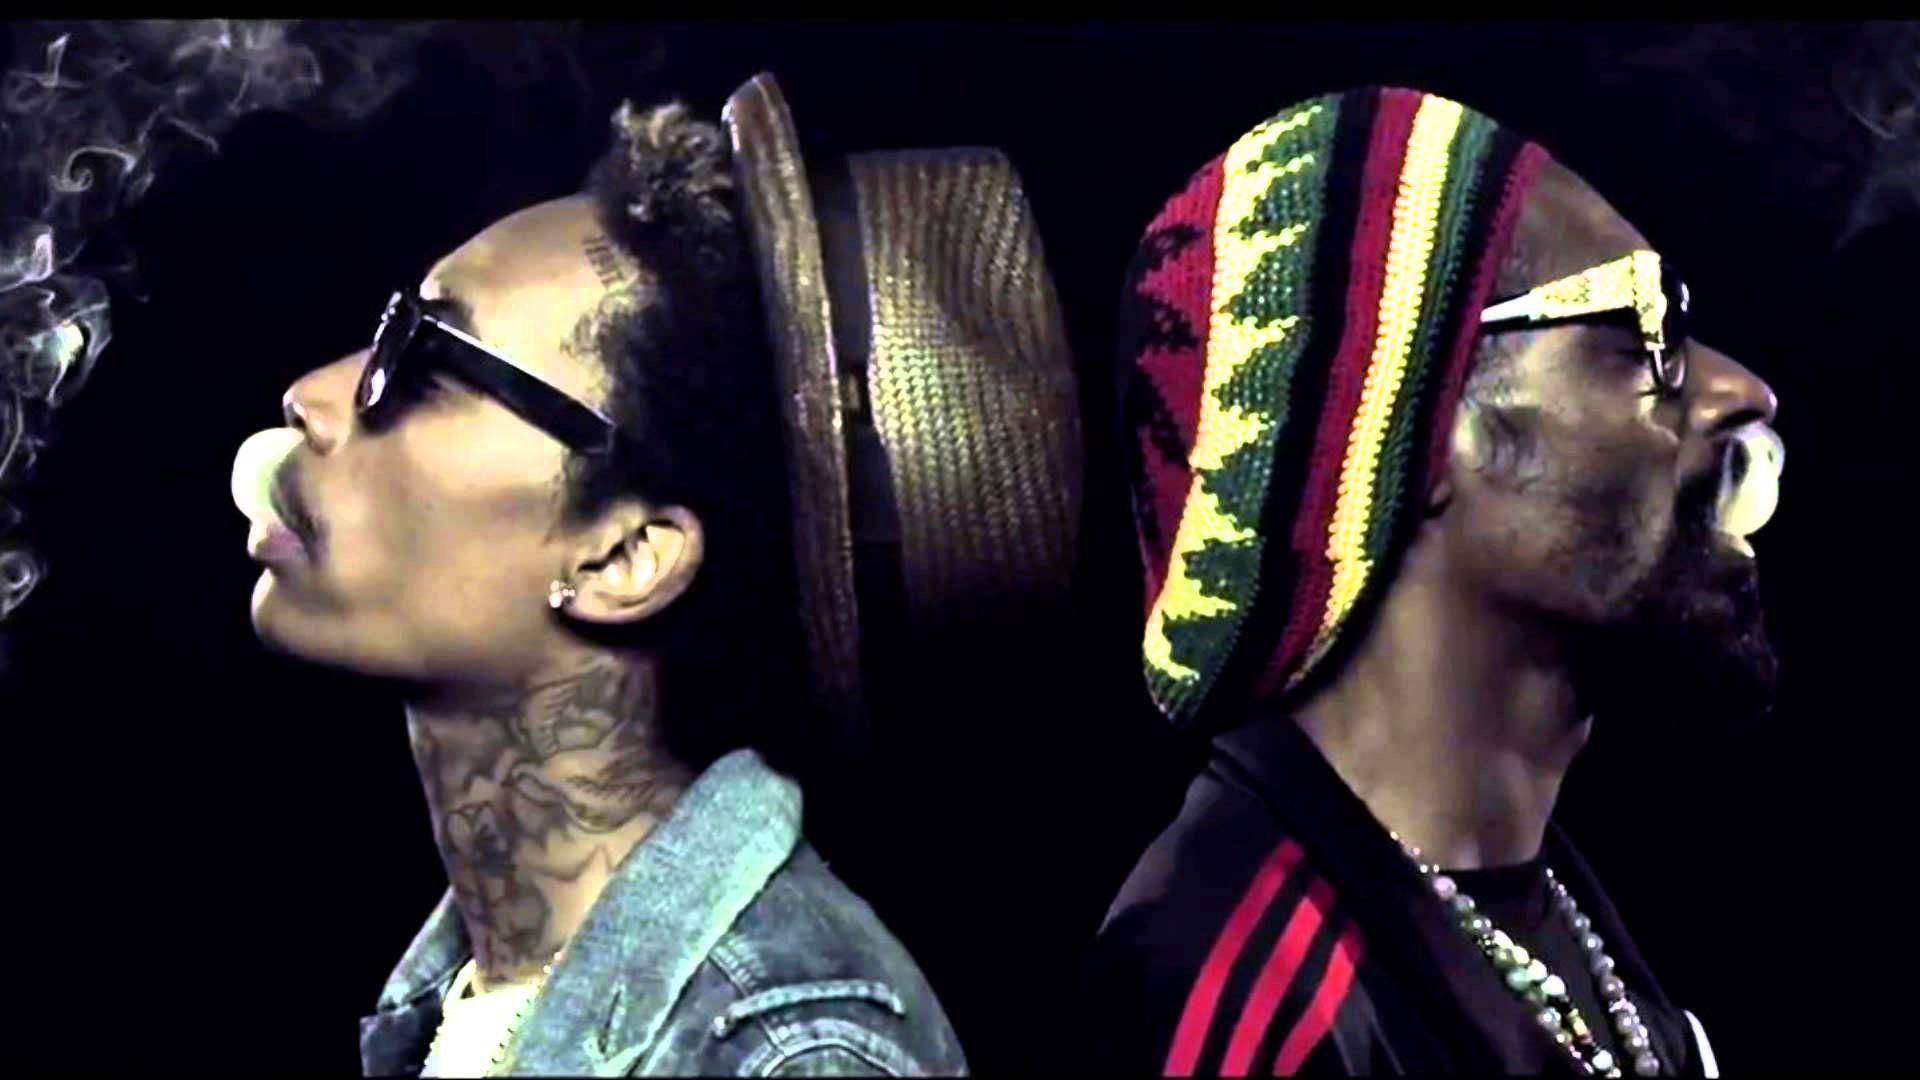 Wallpapers Wiz Khalifa Snoop Dogg Wallpaper Cave